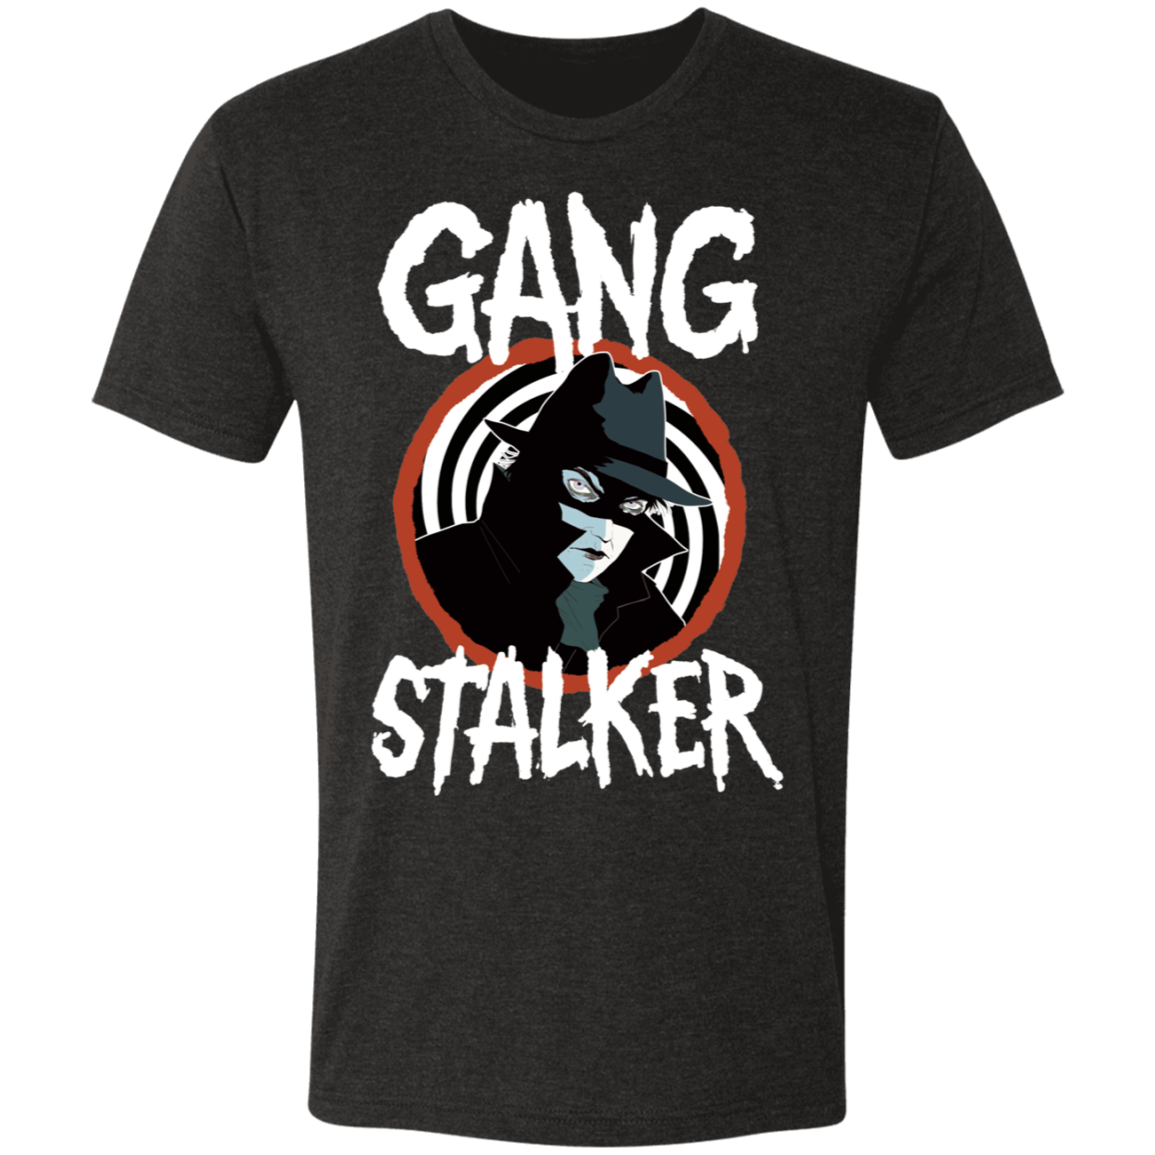 Rusty Cage - Gangstalker - Black - (Mens)